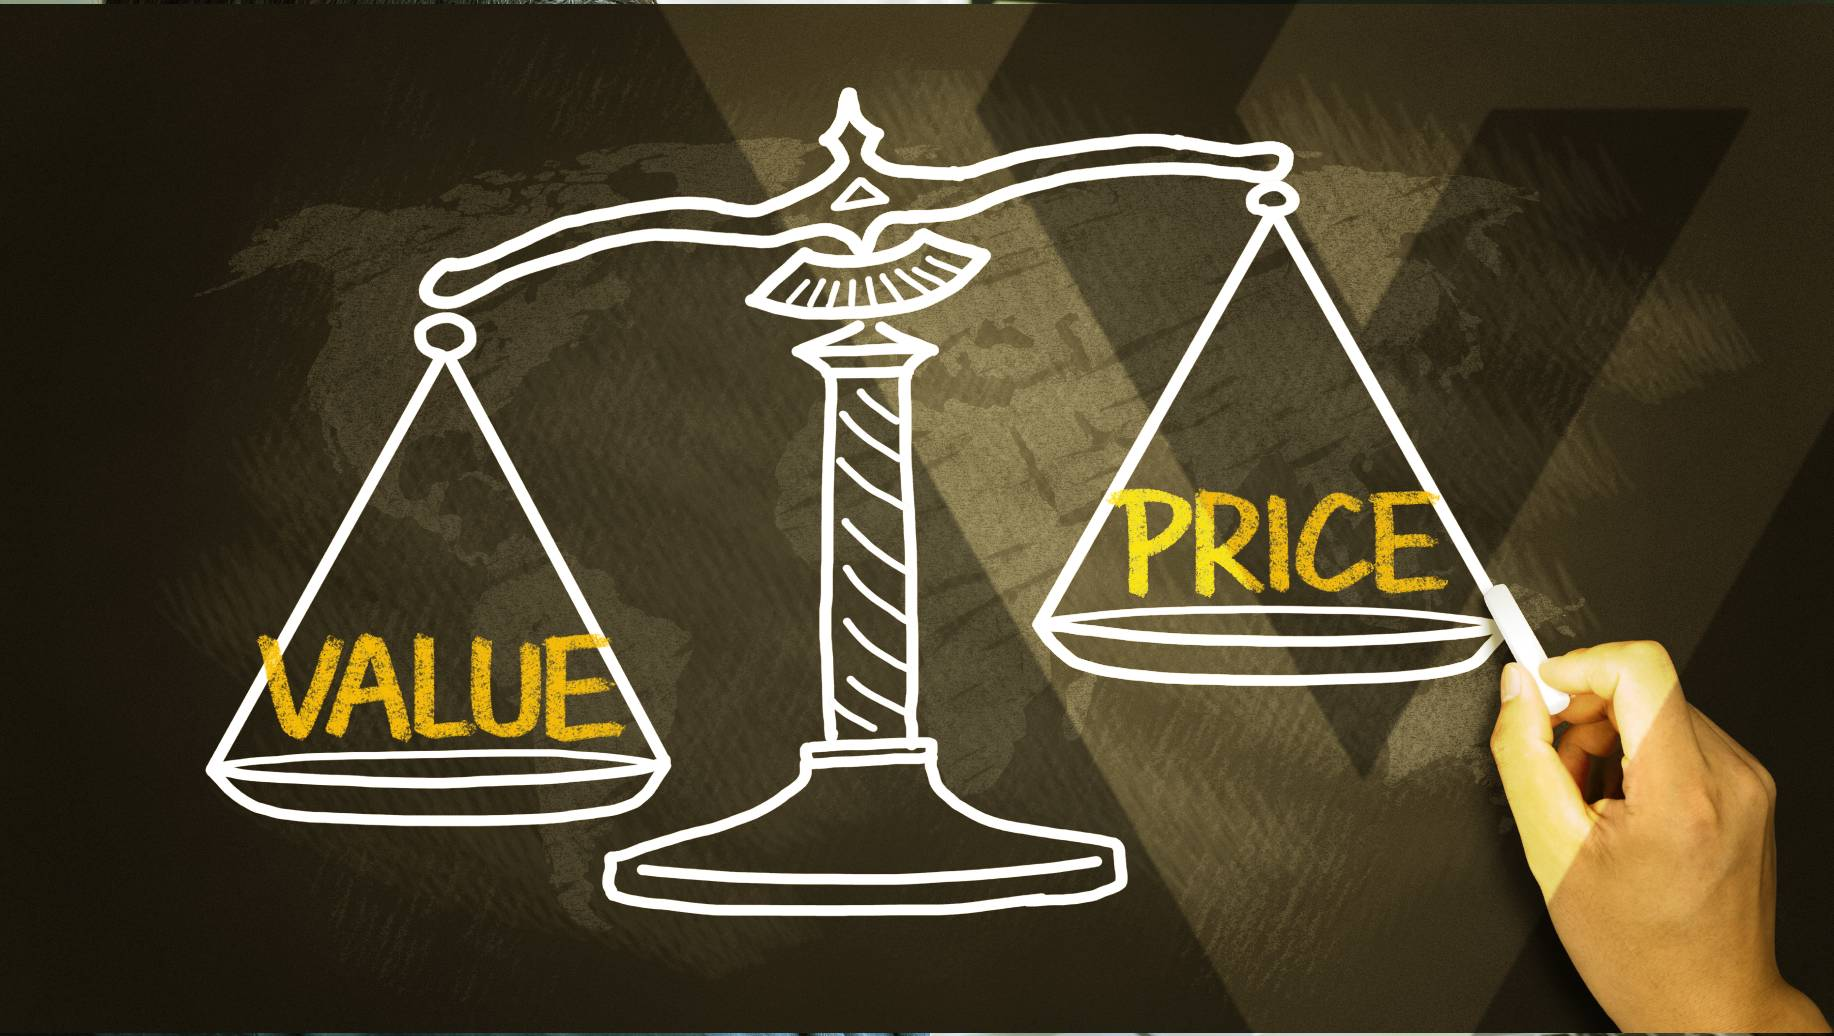 4 Standards Of Value For Business Valuation - Explained